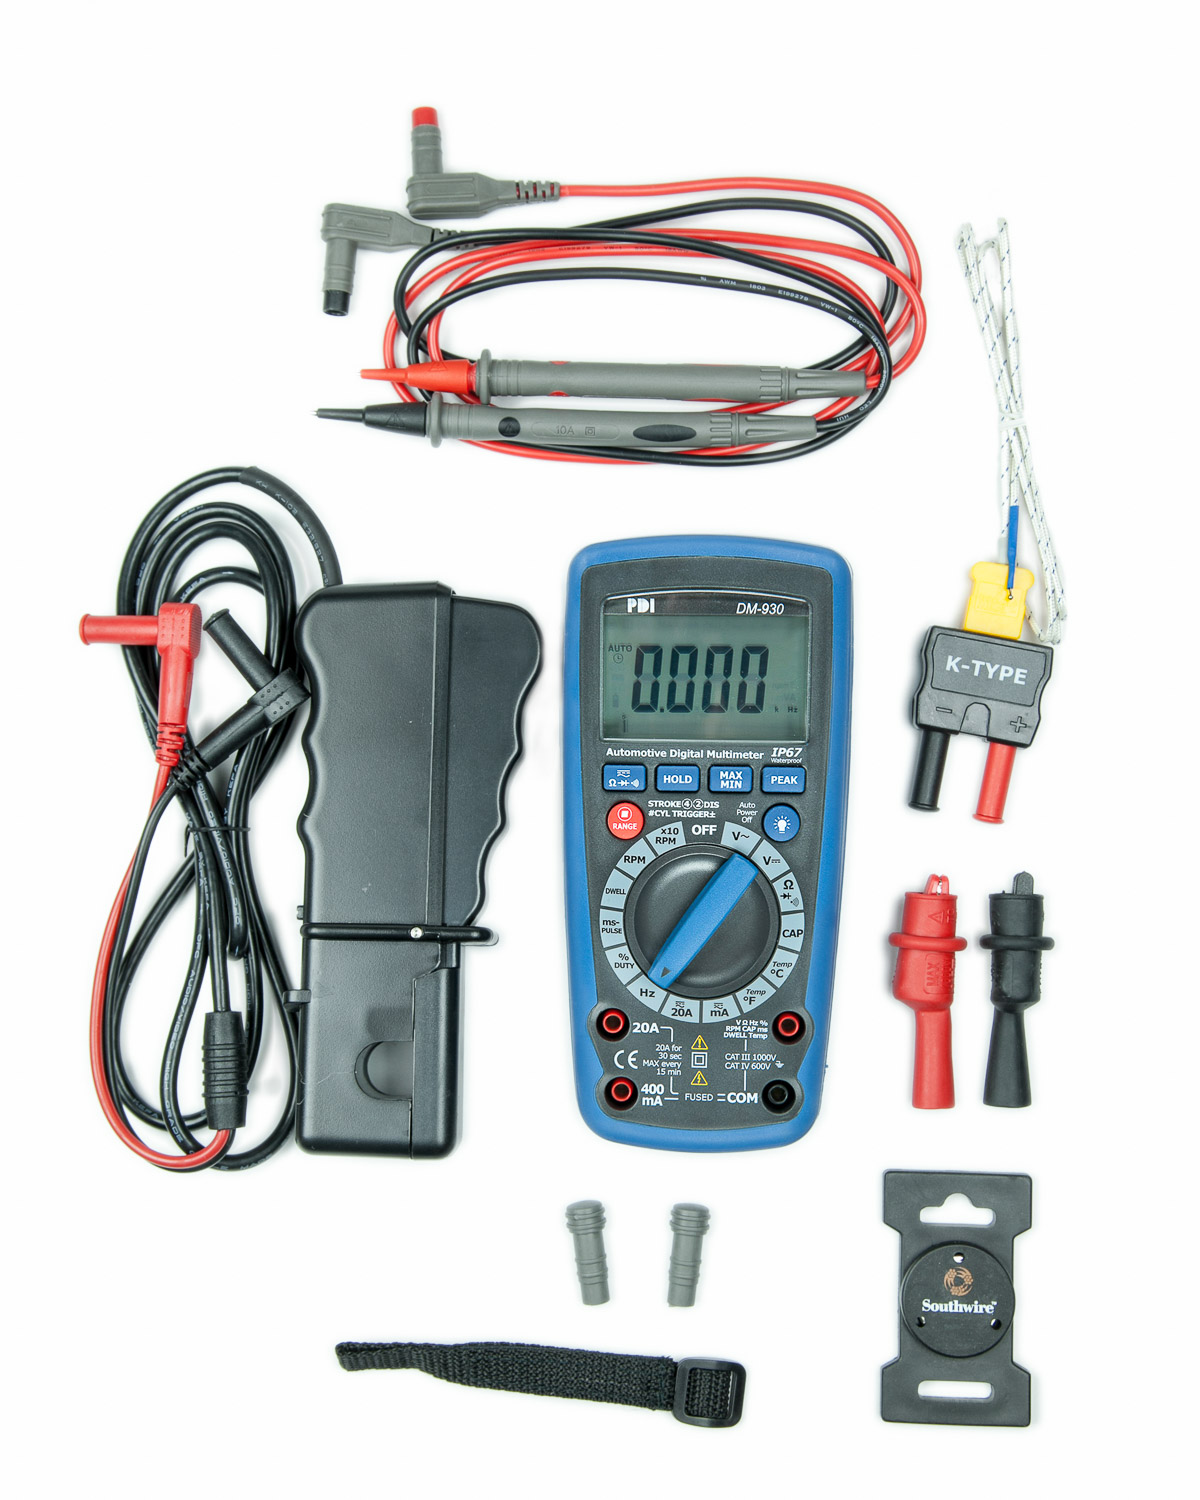 Dm 930 Automotive Digital Multimeter By Lisle Continuity Tester Computer Safe Circuit Ul Certificate Of Compliance